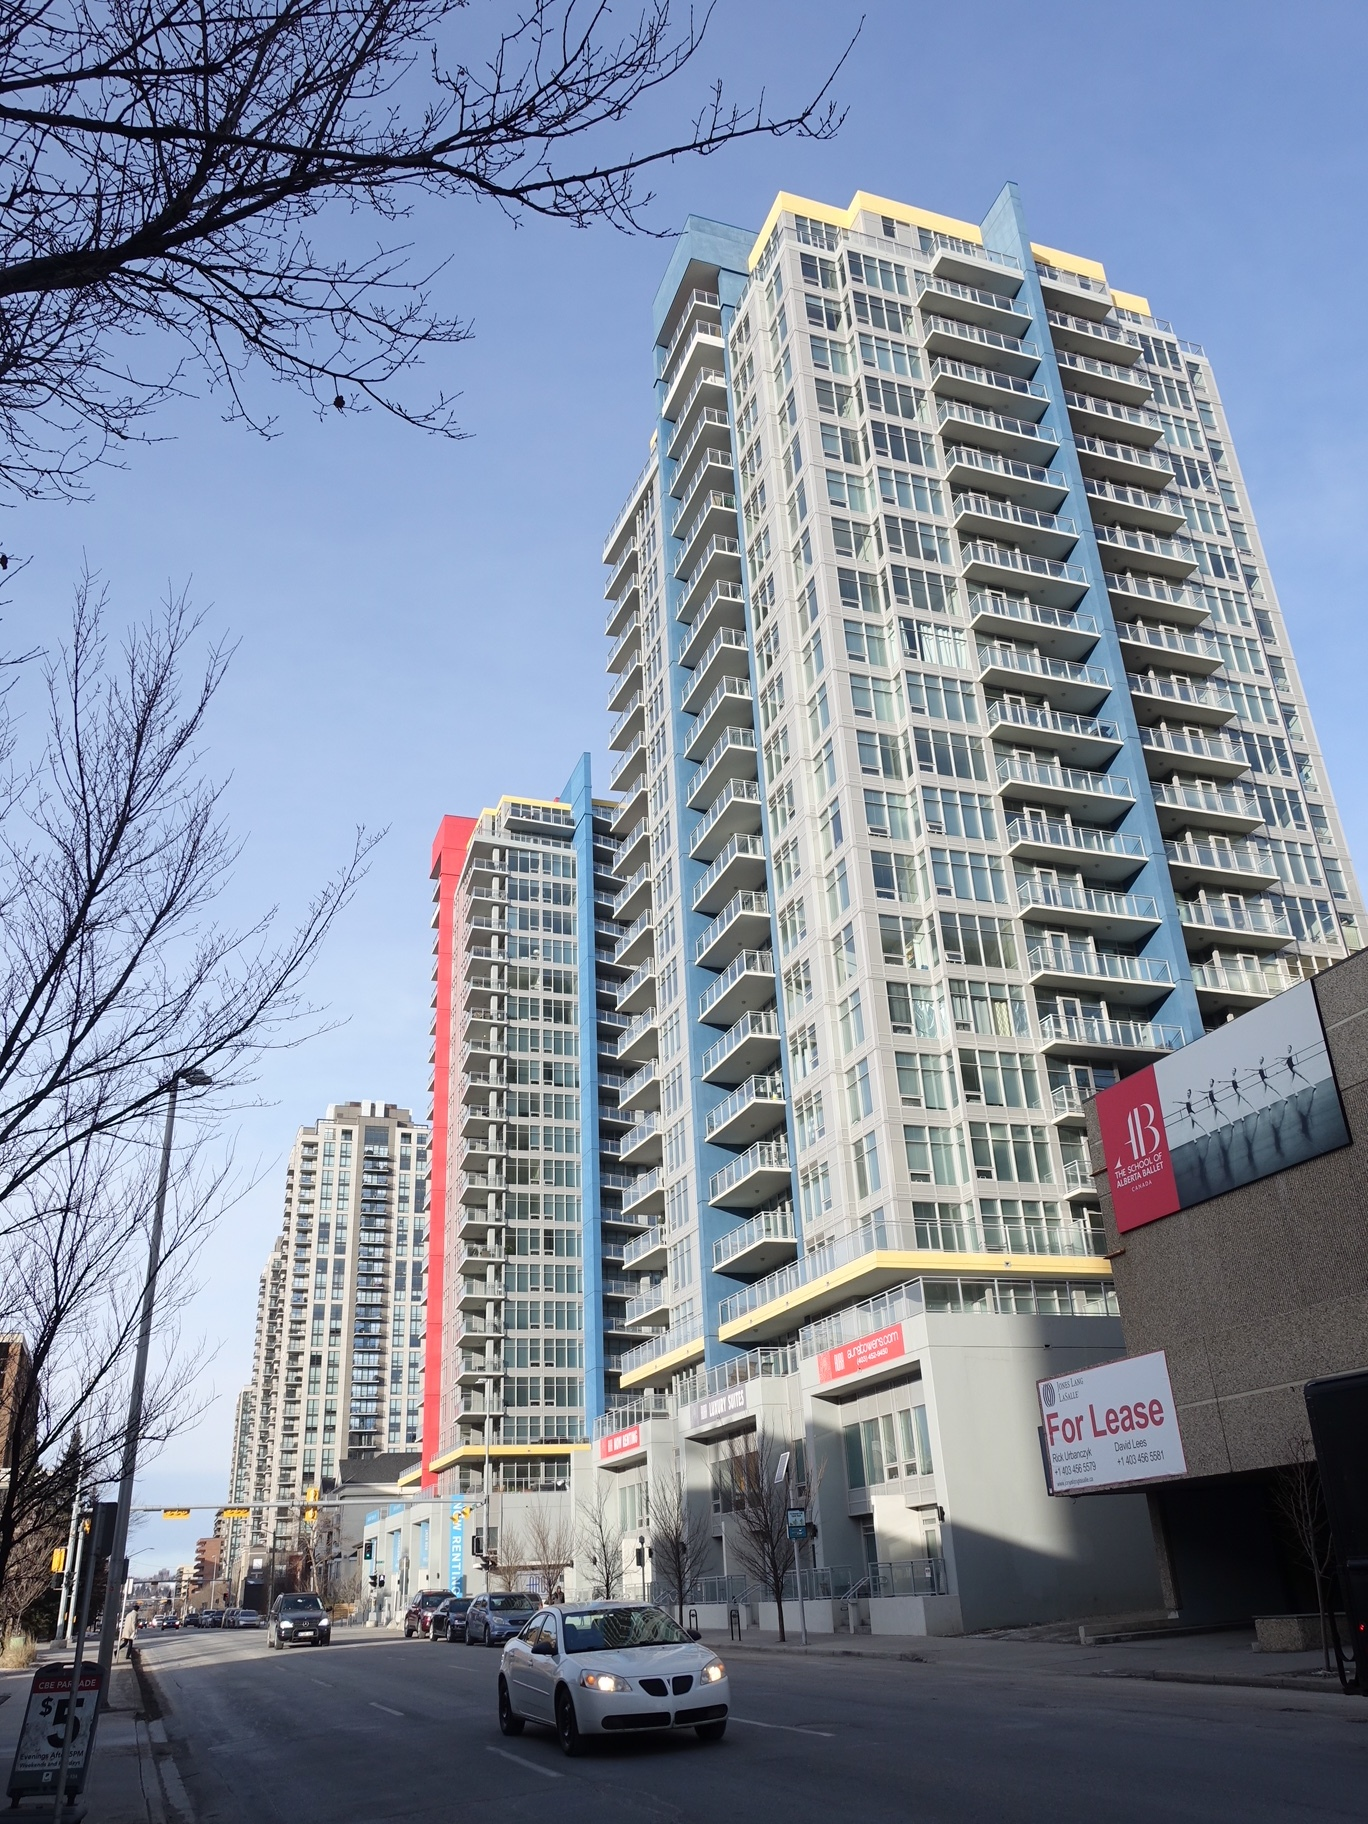 Calgary's Beltline's streets are lined with new residential buildings with several more under construction. It is one of the City's fastest growing neighbourhoods.